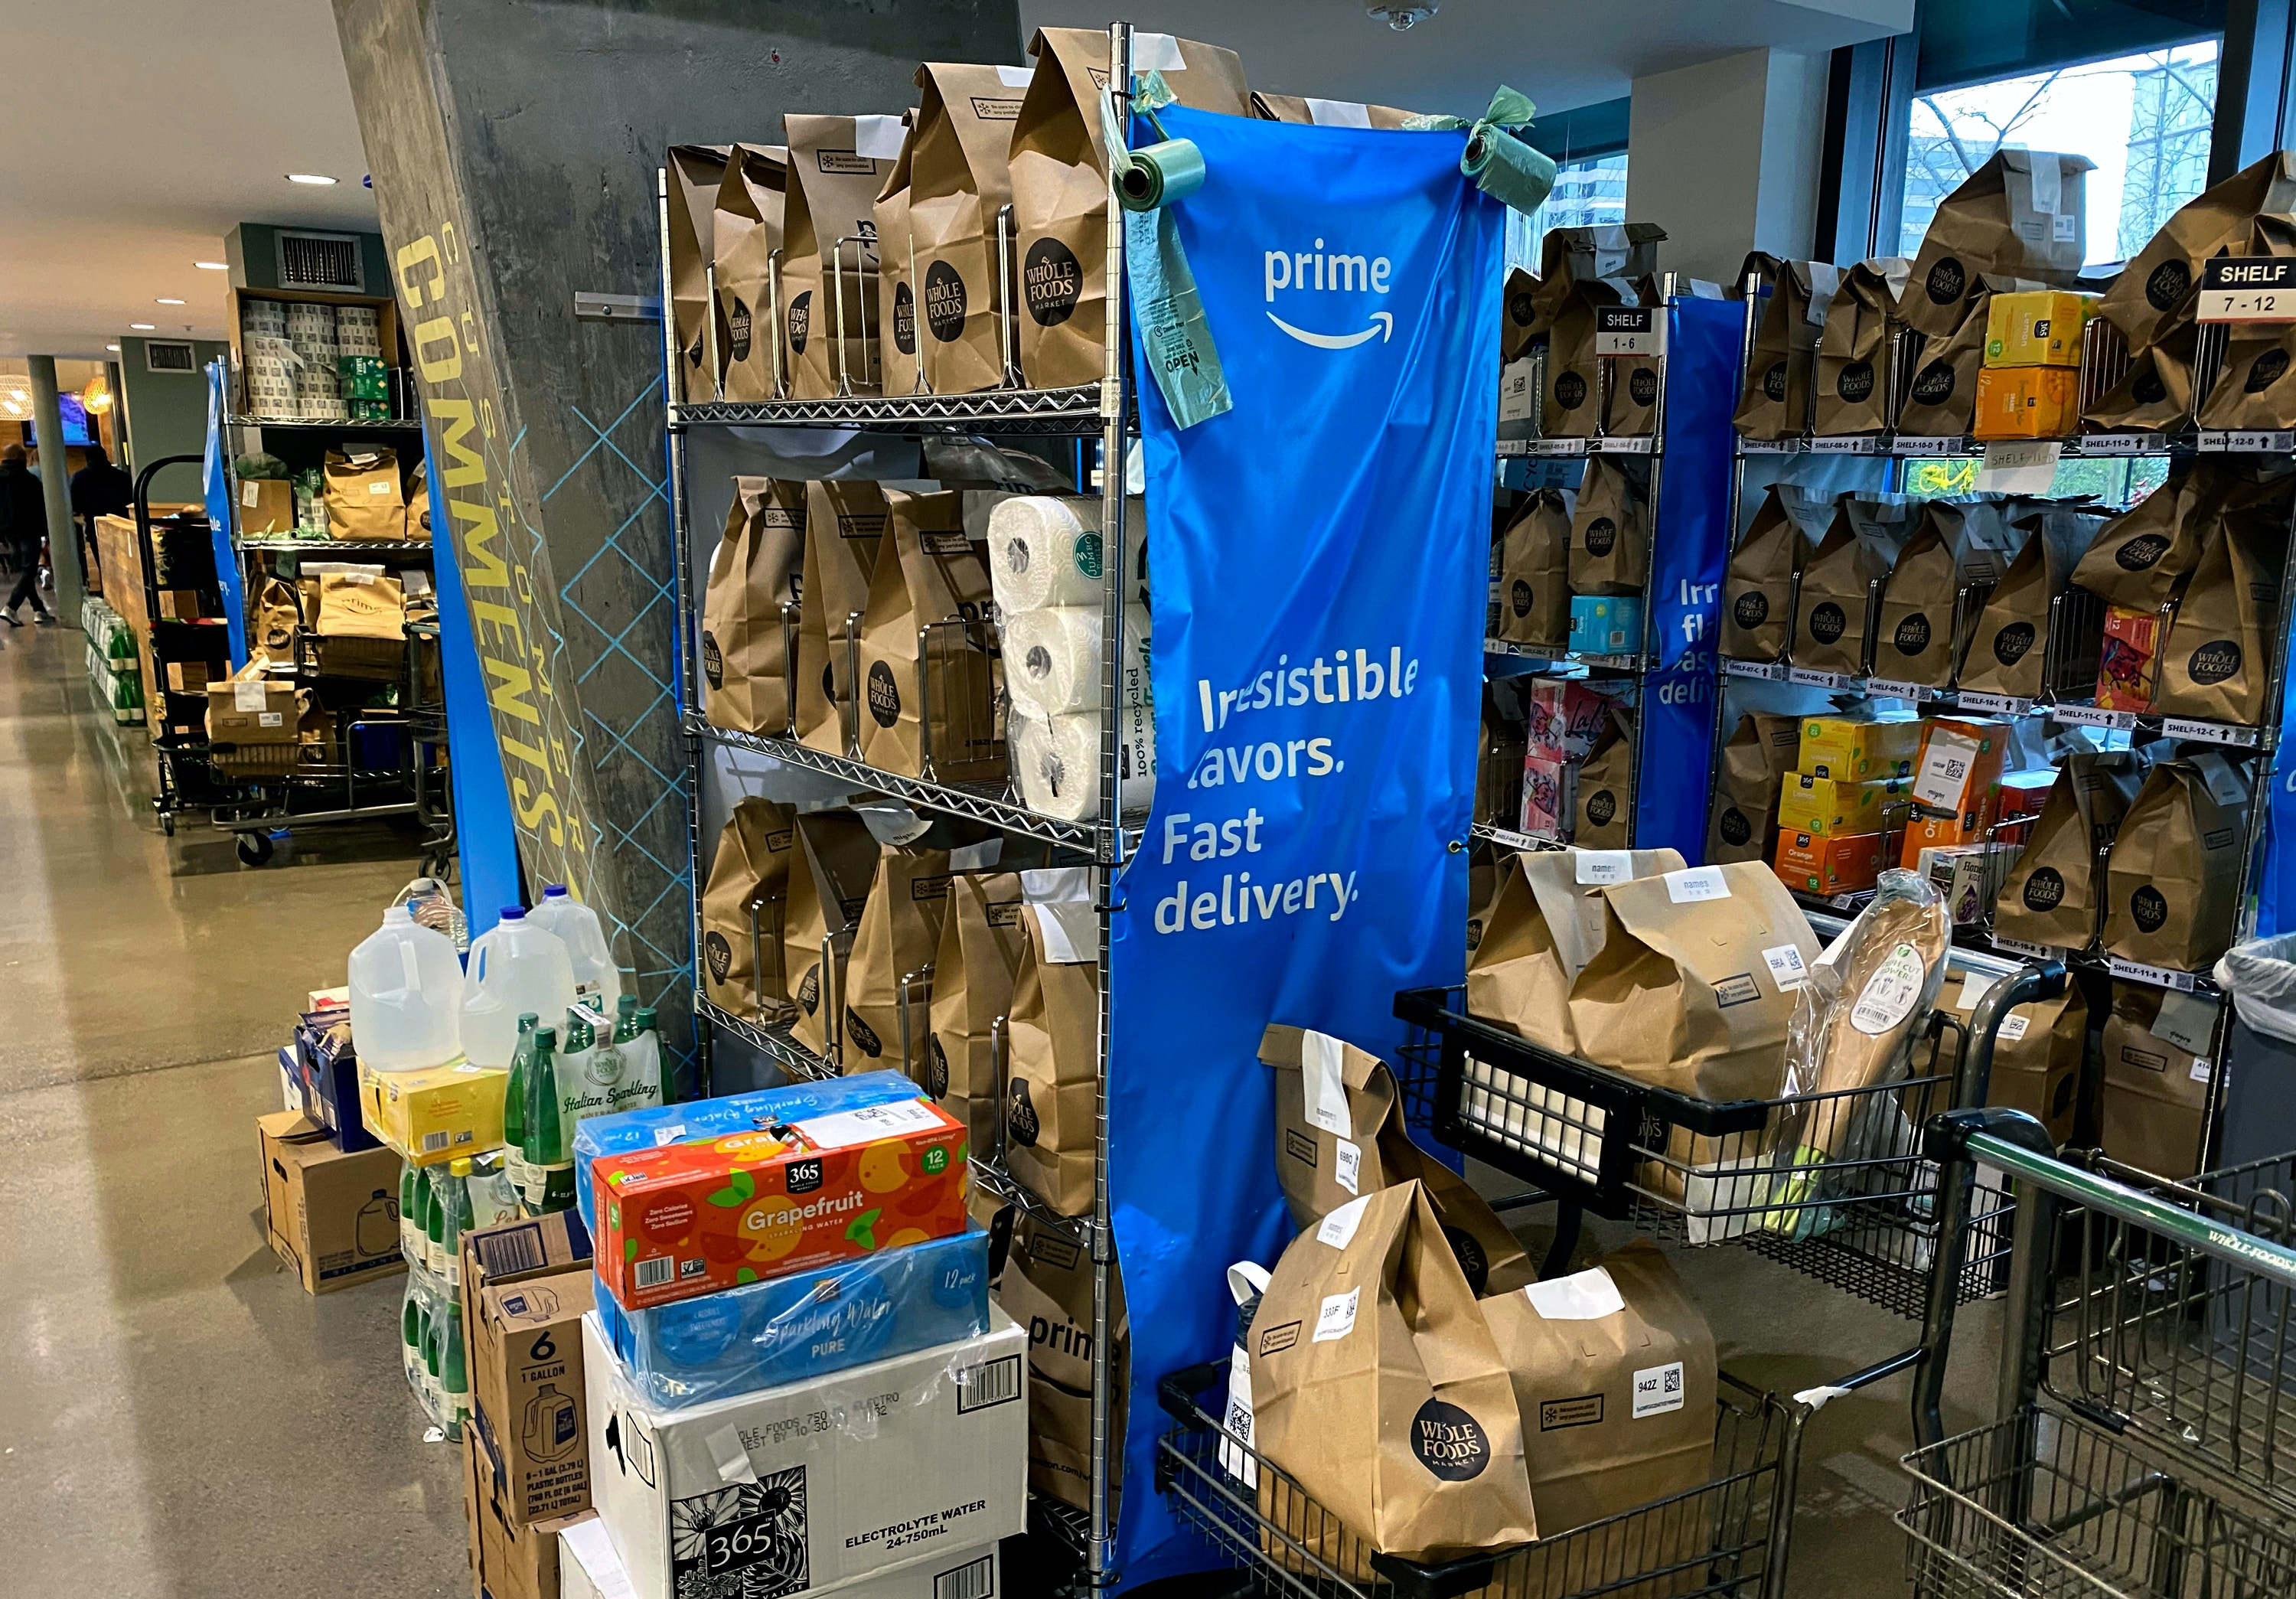 PENTAGON CITY, VA- MARCH 15: View of Amazon Prime orders waiting on delivery at a Whole Foods as COVID-19 pandemic has led to a backlog of orders due to no drivers in Pentagon City, Virginia on March 15, 2020. Credit: mpi34/MediaPunch /IPX